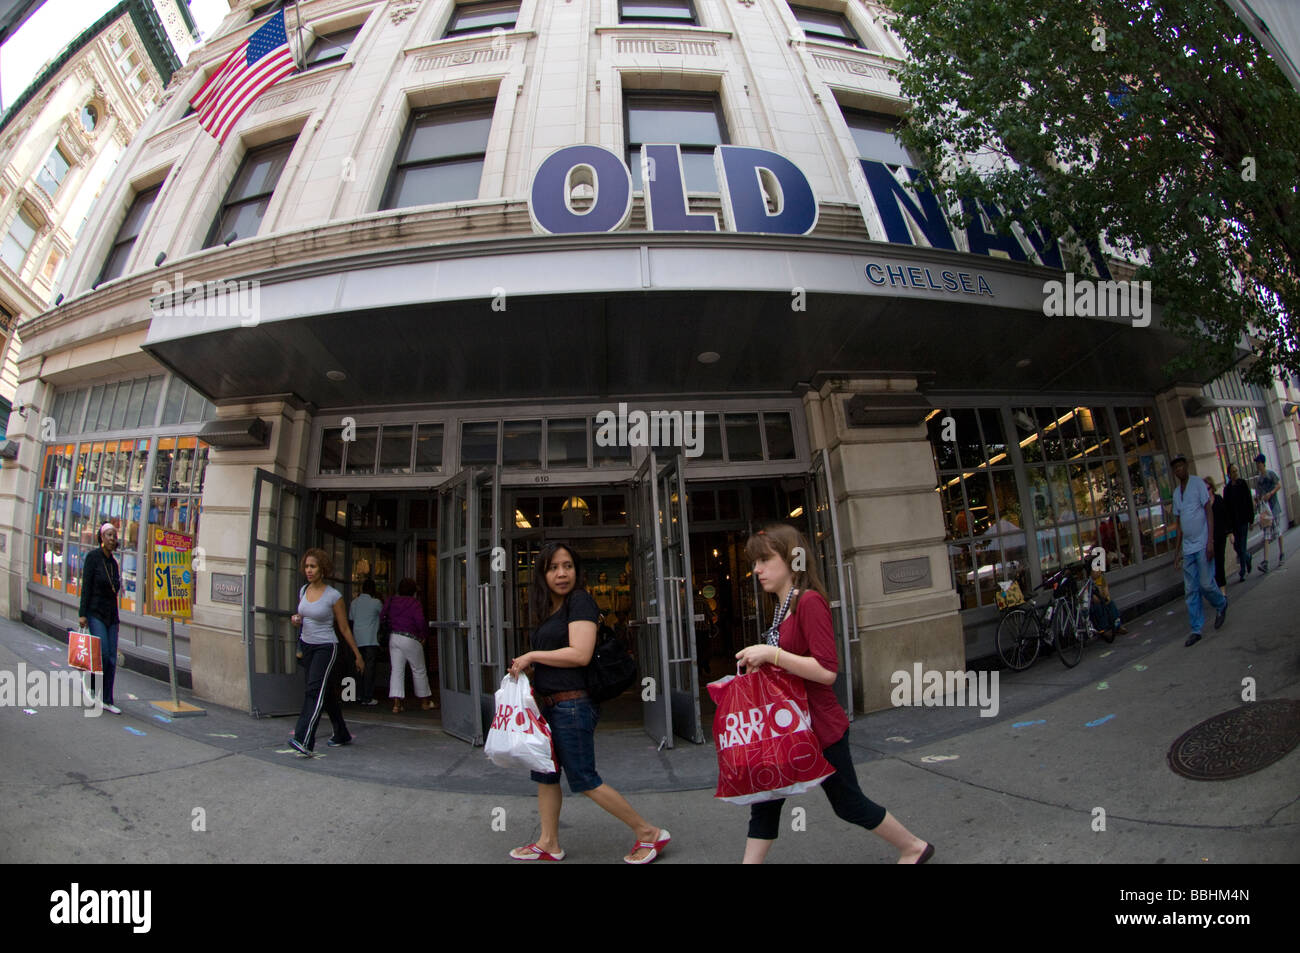 Old navy logo stock photos old navy logo stock images alamy old navy shoppers outside an old navy store in the new york neighborhood of chelsea buycottarizona